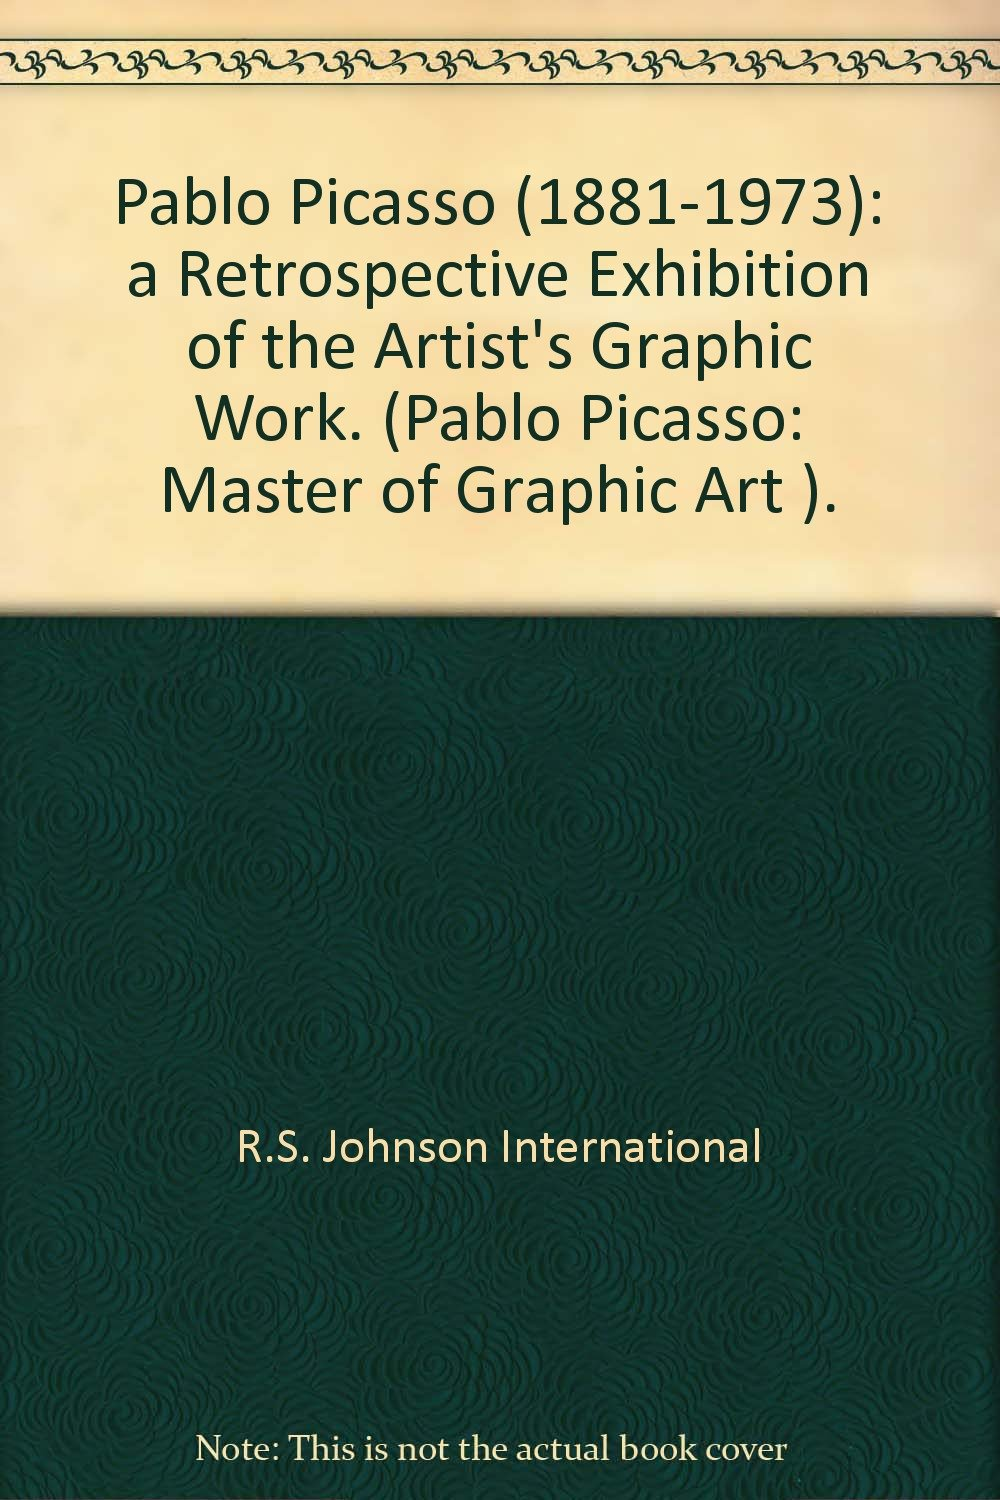 pablo picasso 1881 1973 a retrospective exhibition of the artists graphic work pablo picasso master of graphic art